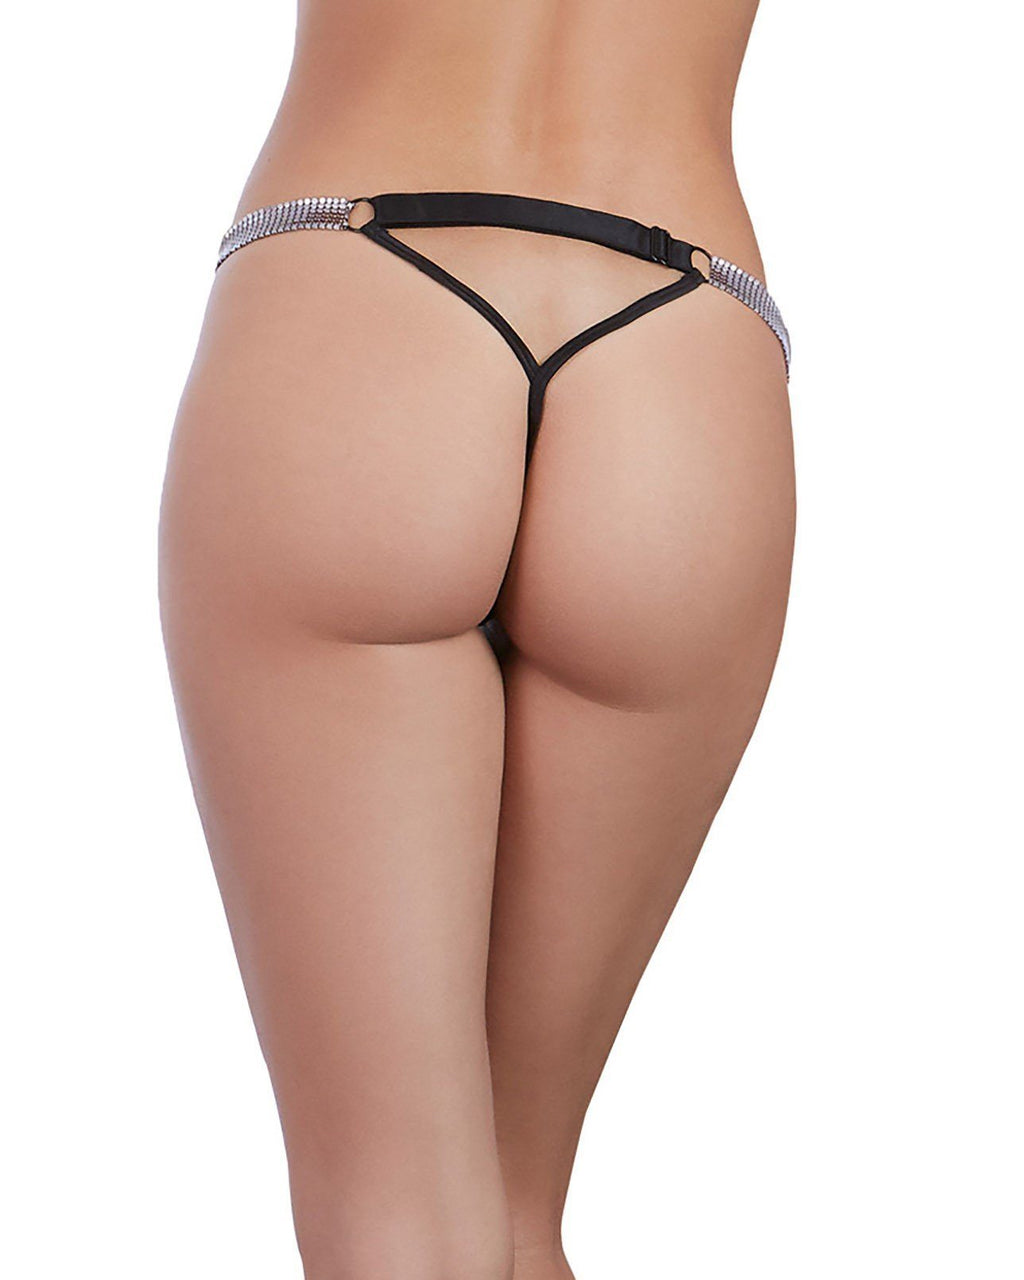 Microfiber G-String with Chainmail Hip Strap Panty Dreamgirl International